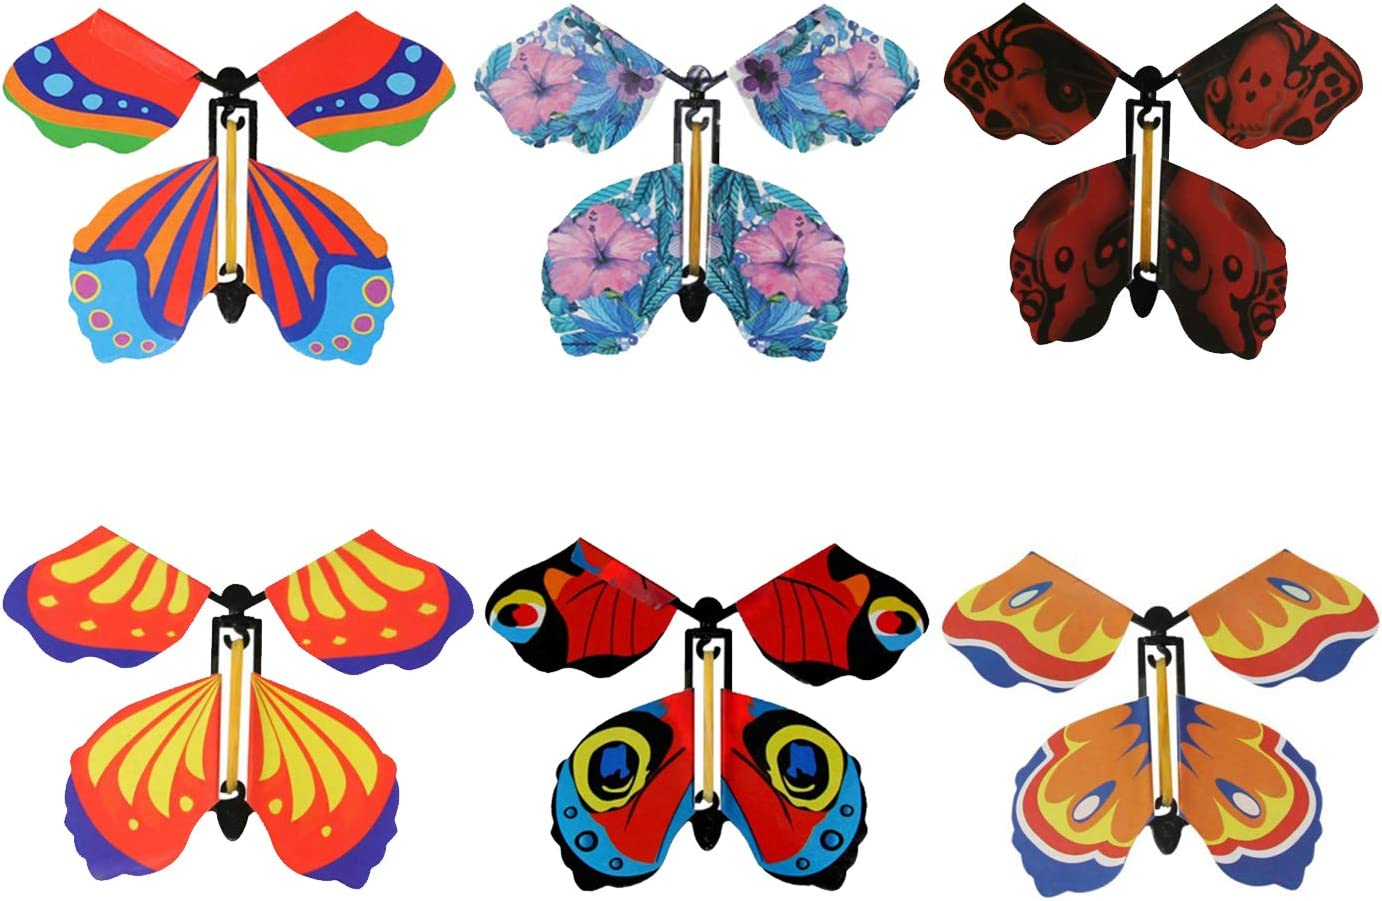 Modpion 18 Pieces service Magic Fairy Butterfly Rubber Max 88% OFF Power Band Flying